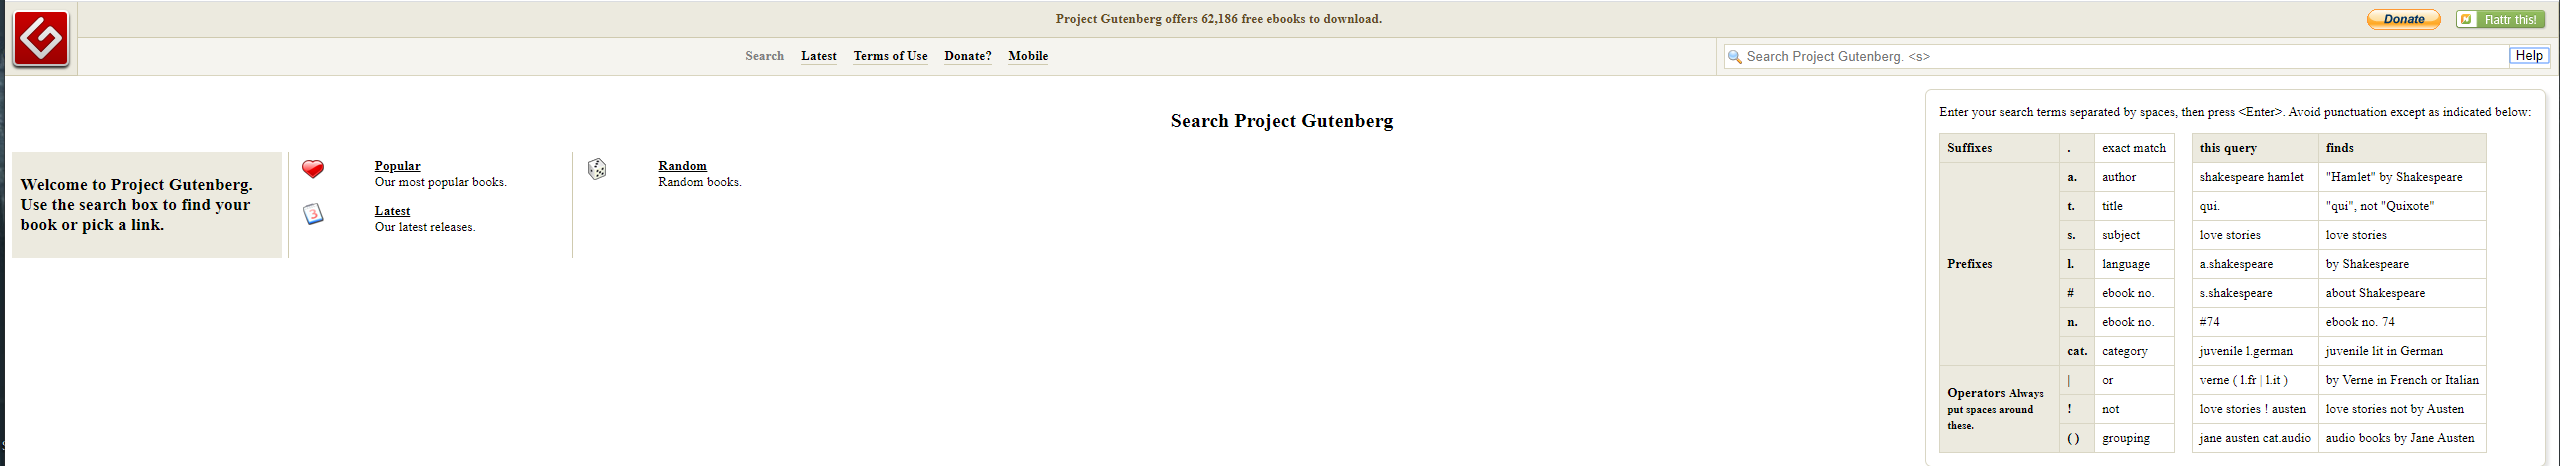 Screenshot of the Project Gutenberg Search Function